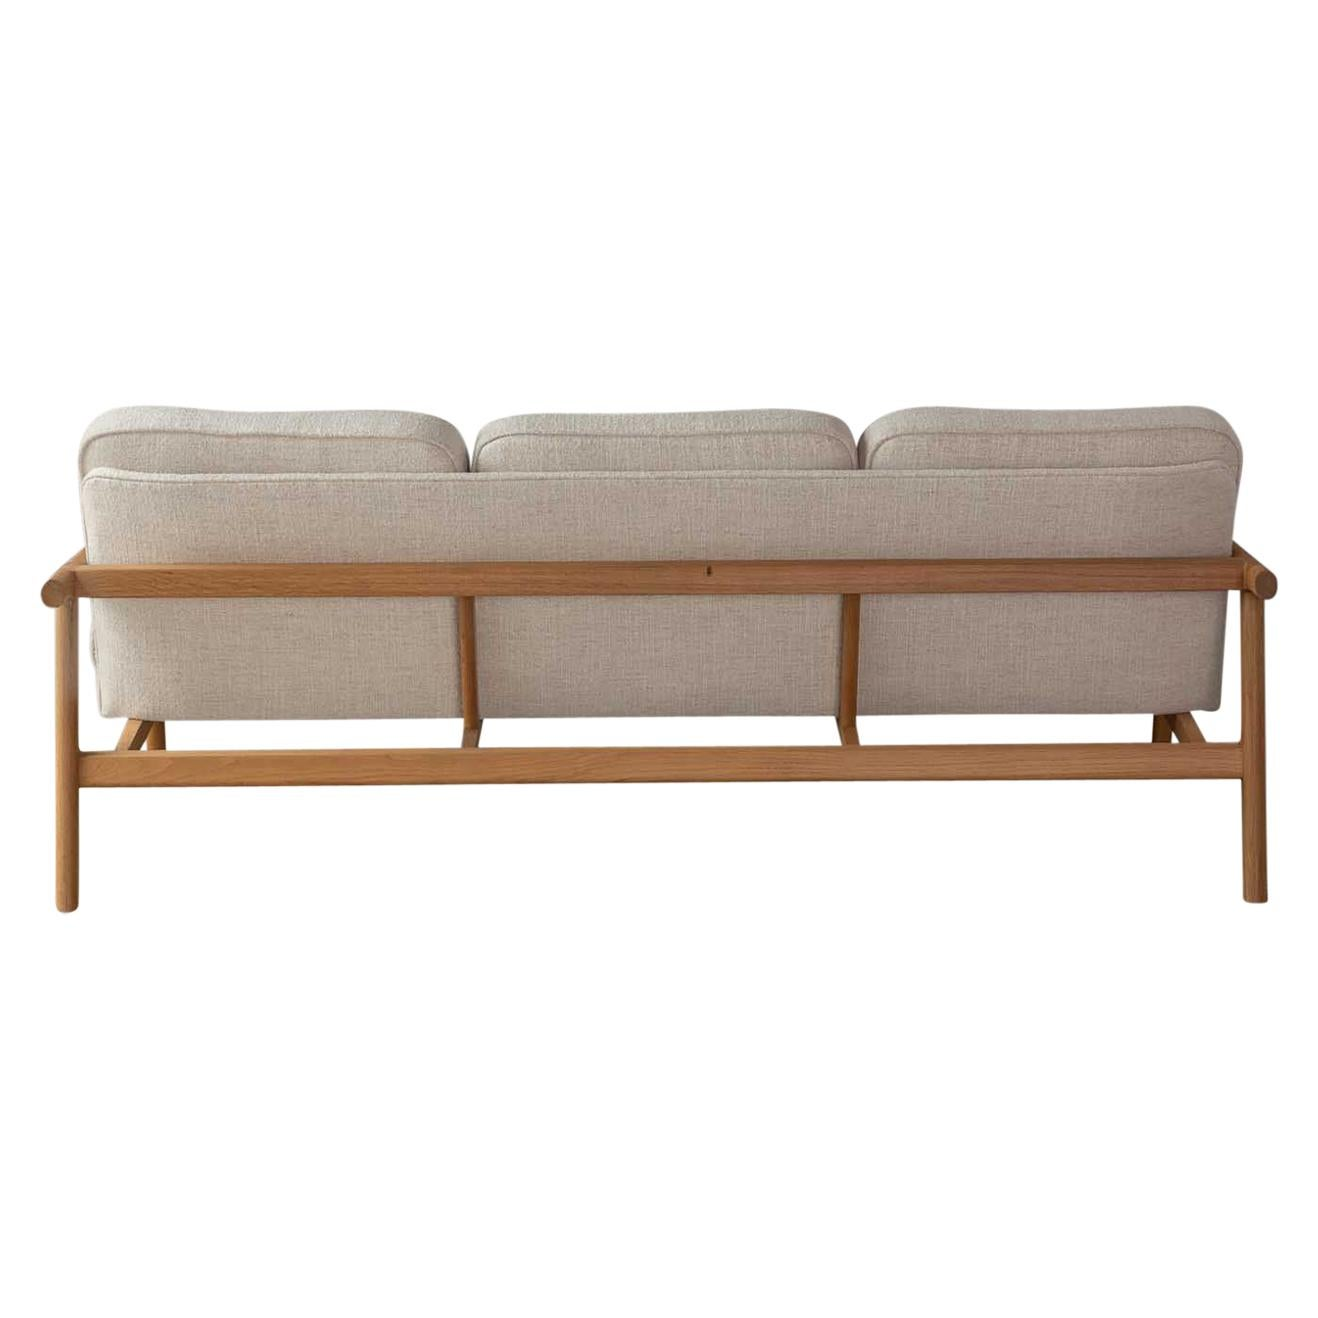 Handcrafted White Oak Moresby Sofa with Custom Linen or Leather Upholstery